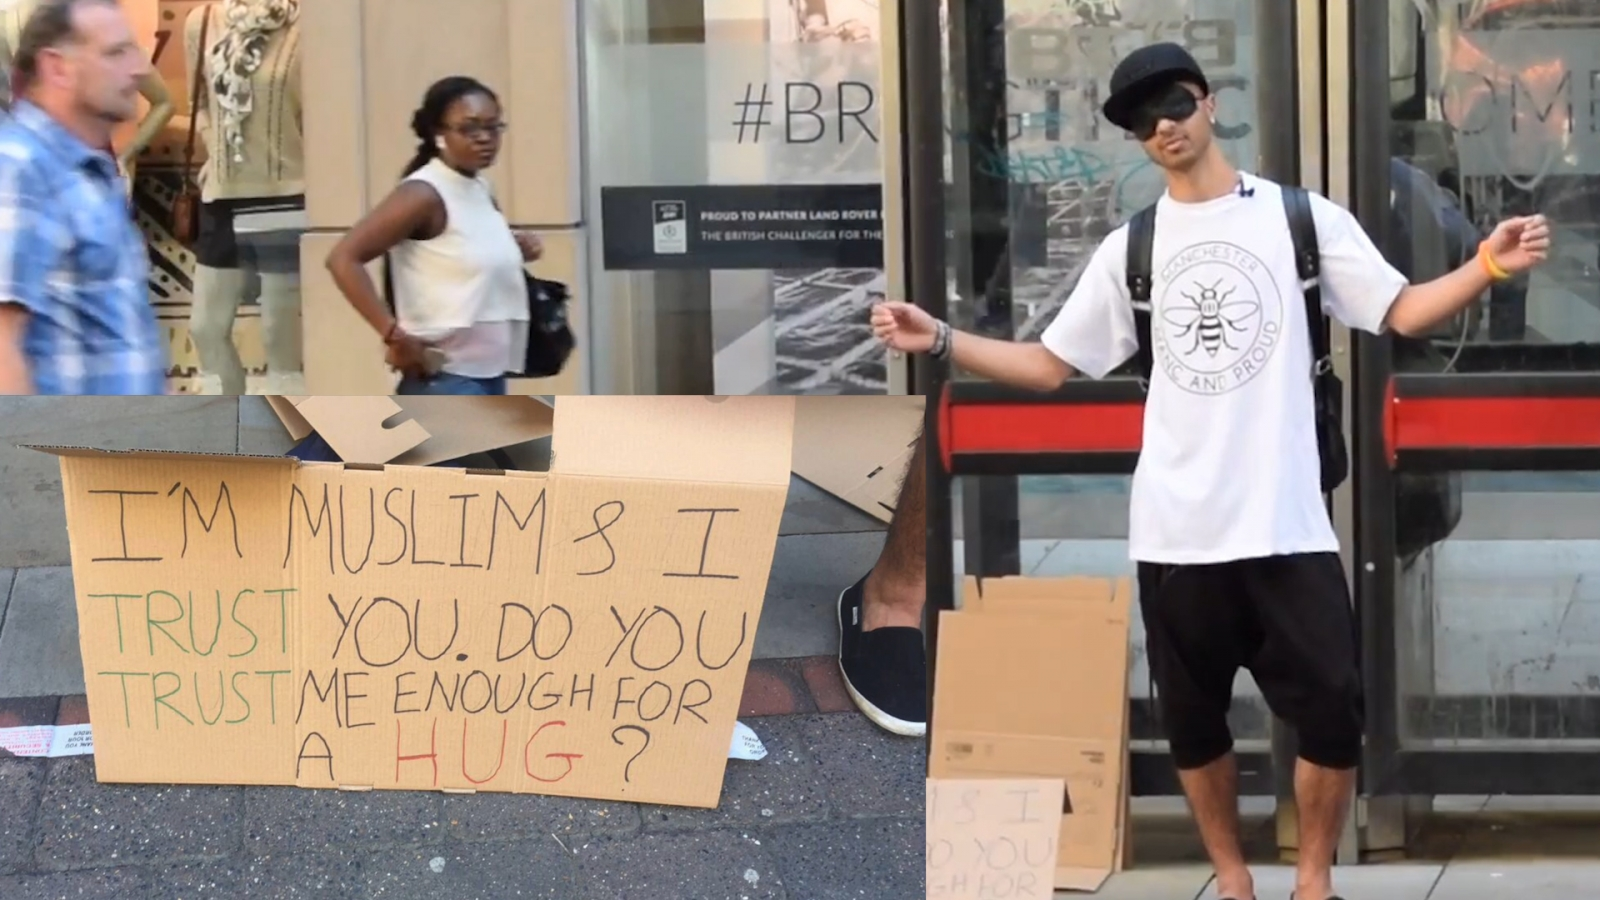 people-queue-up-for-free-hugs-offered-by-blindfolded-muslim-man-in-manchester